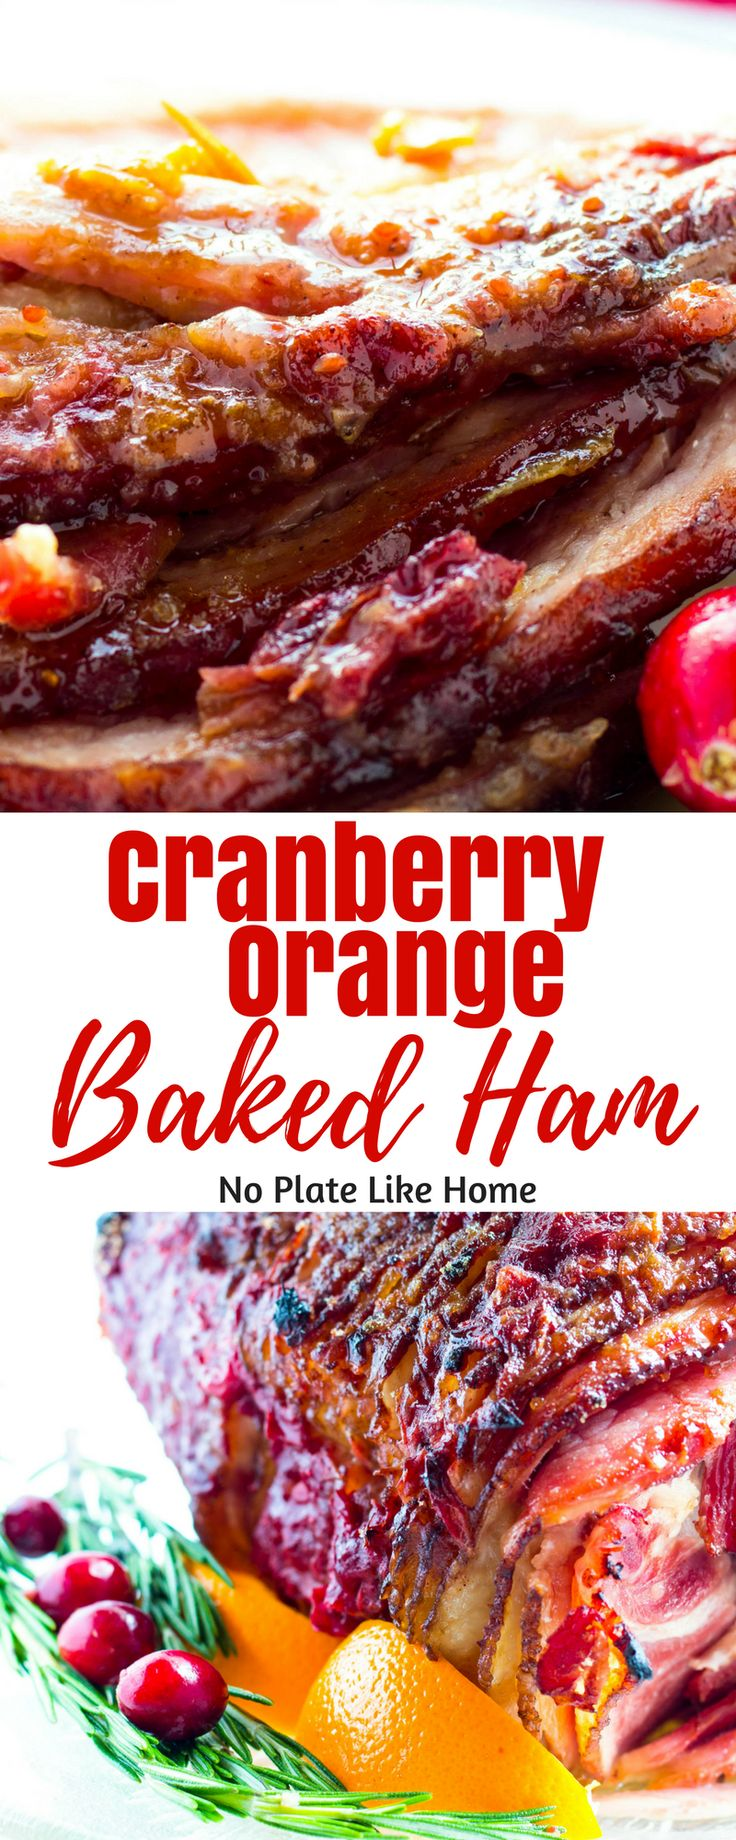 This easy-to-make Cranberry Orange Baked Ham has citrus, tart and sweet flavors that makes it the perfect Christmas or Thanksgiving ham!